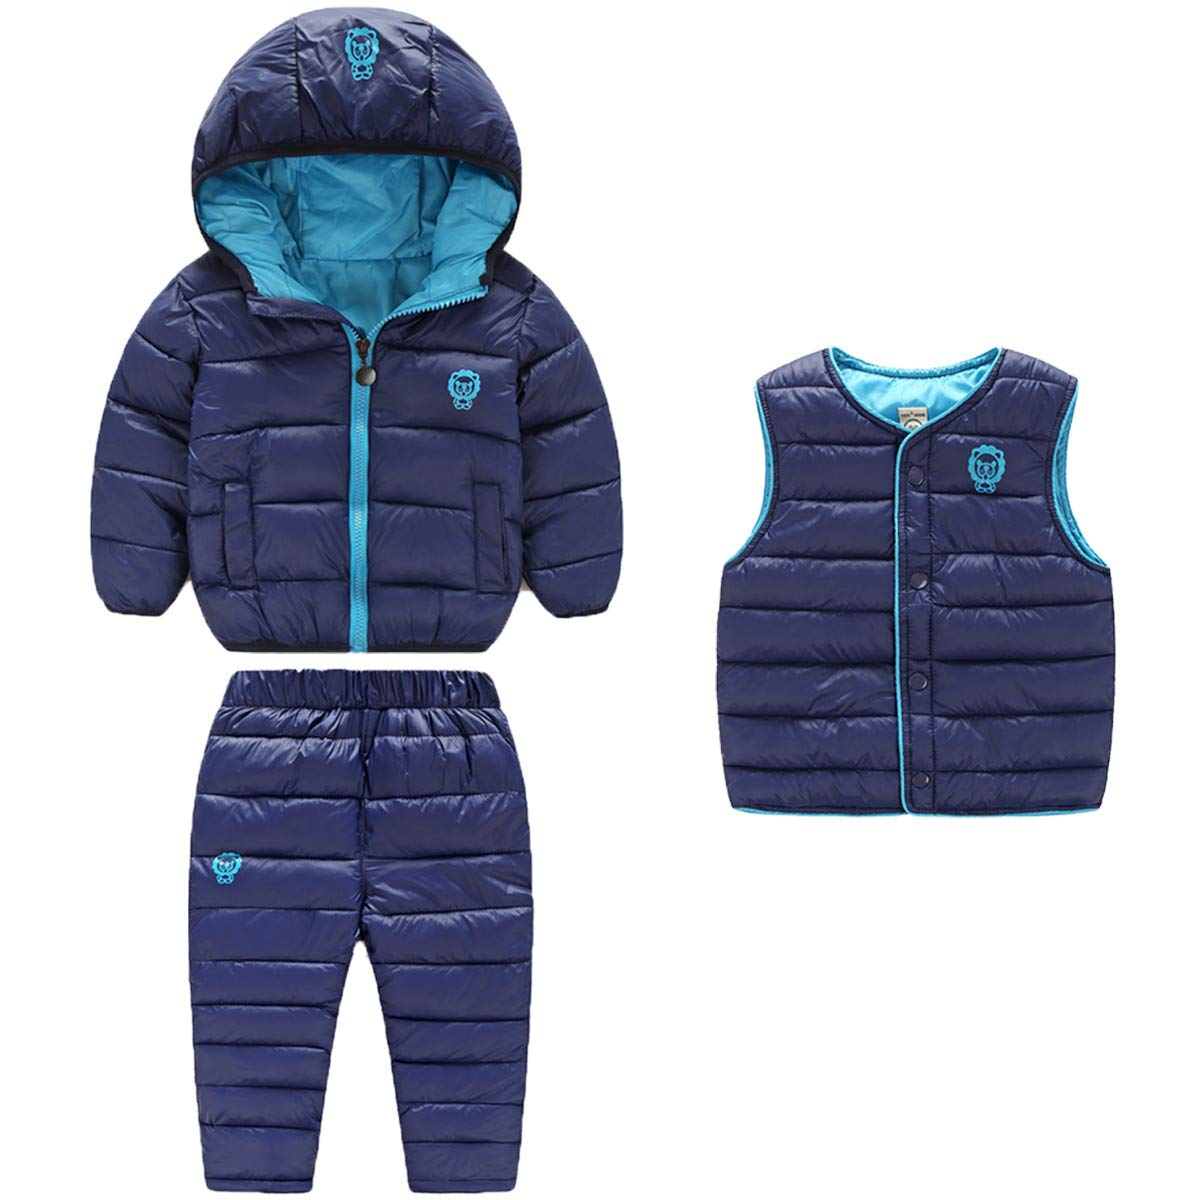 3 Piece Baby Boys Girls Windproof Winter Warm Down Jacket+Ski Pants+Vest Outfit Cotton-Padded Snowsuits Set 2-3 Years Dark Blue by REWANGOING